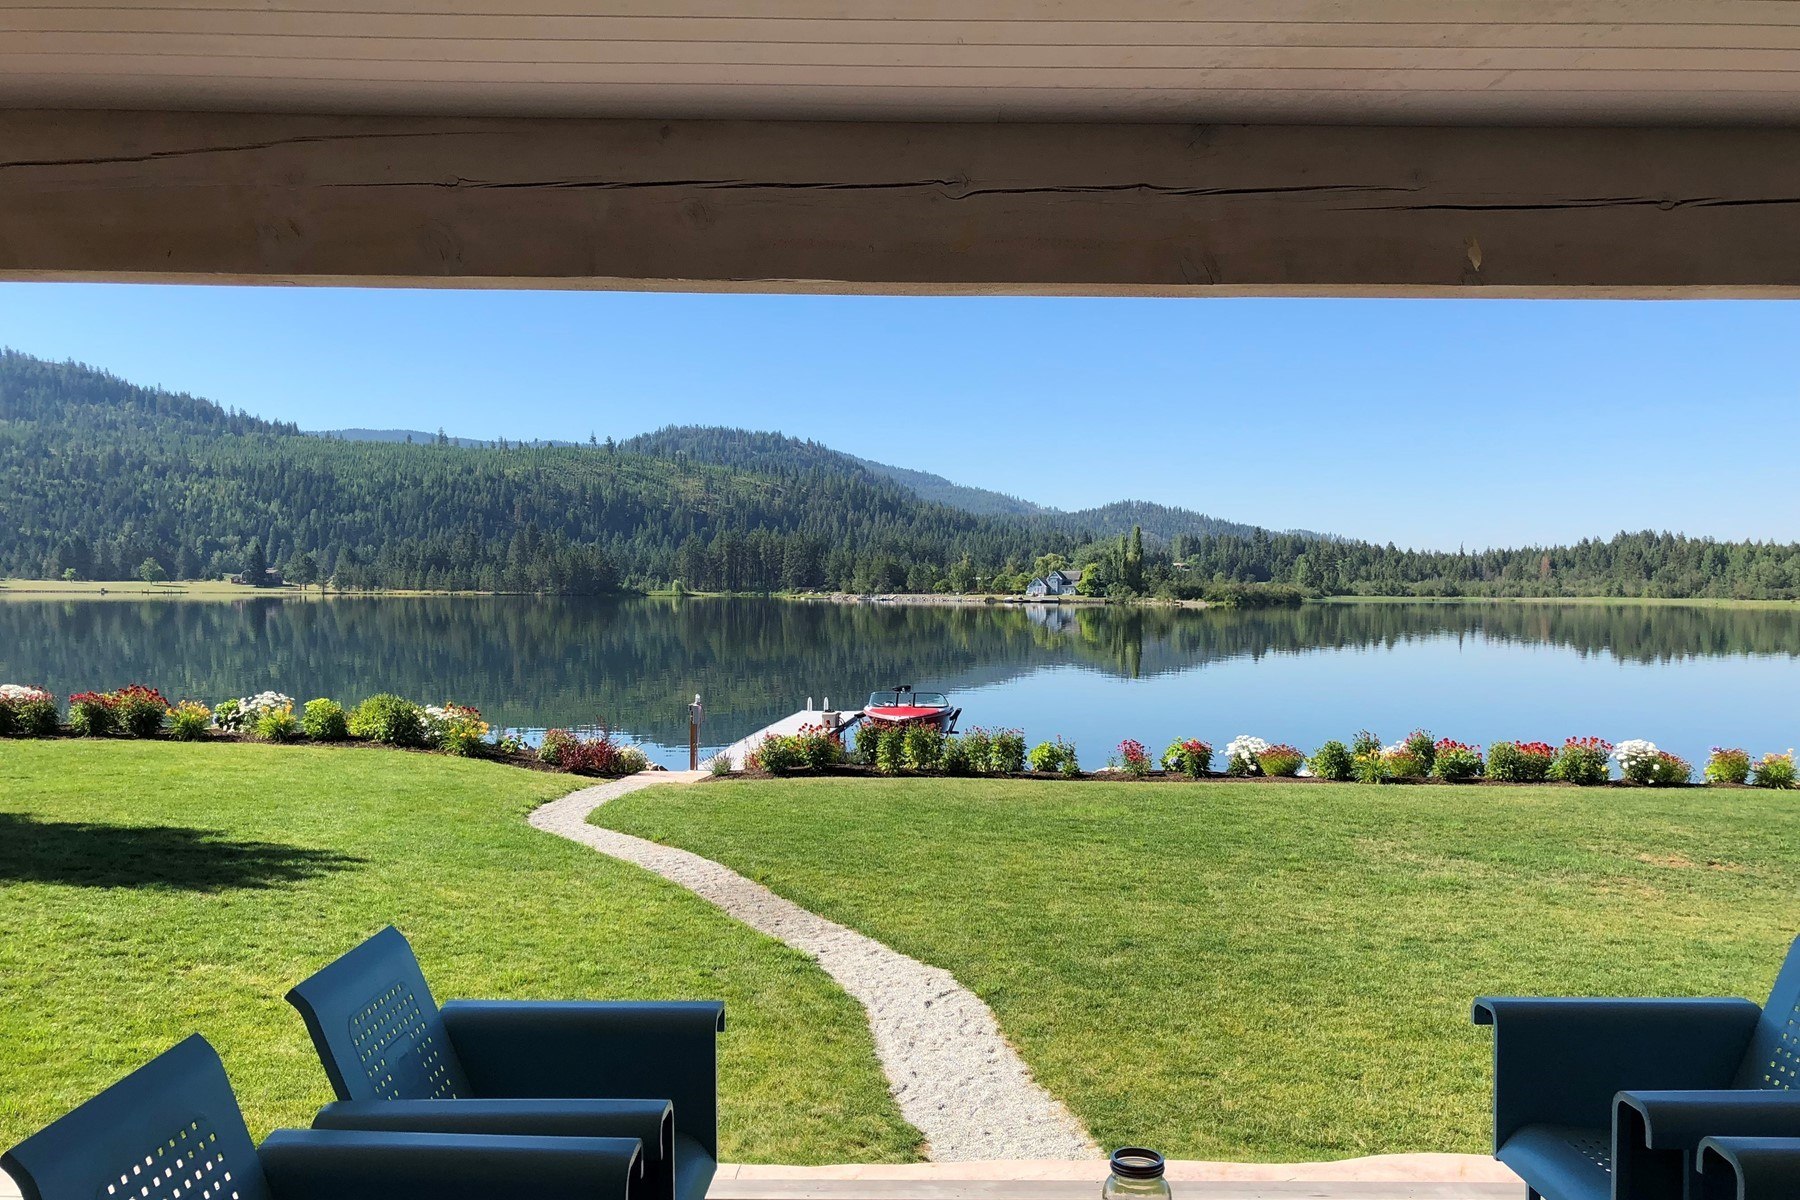 Single Family Homes for Sale at Riverfront Craftsman Home 645 River Run Drive Priest River, Idaho 83856 United States